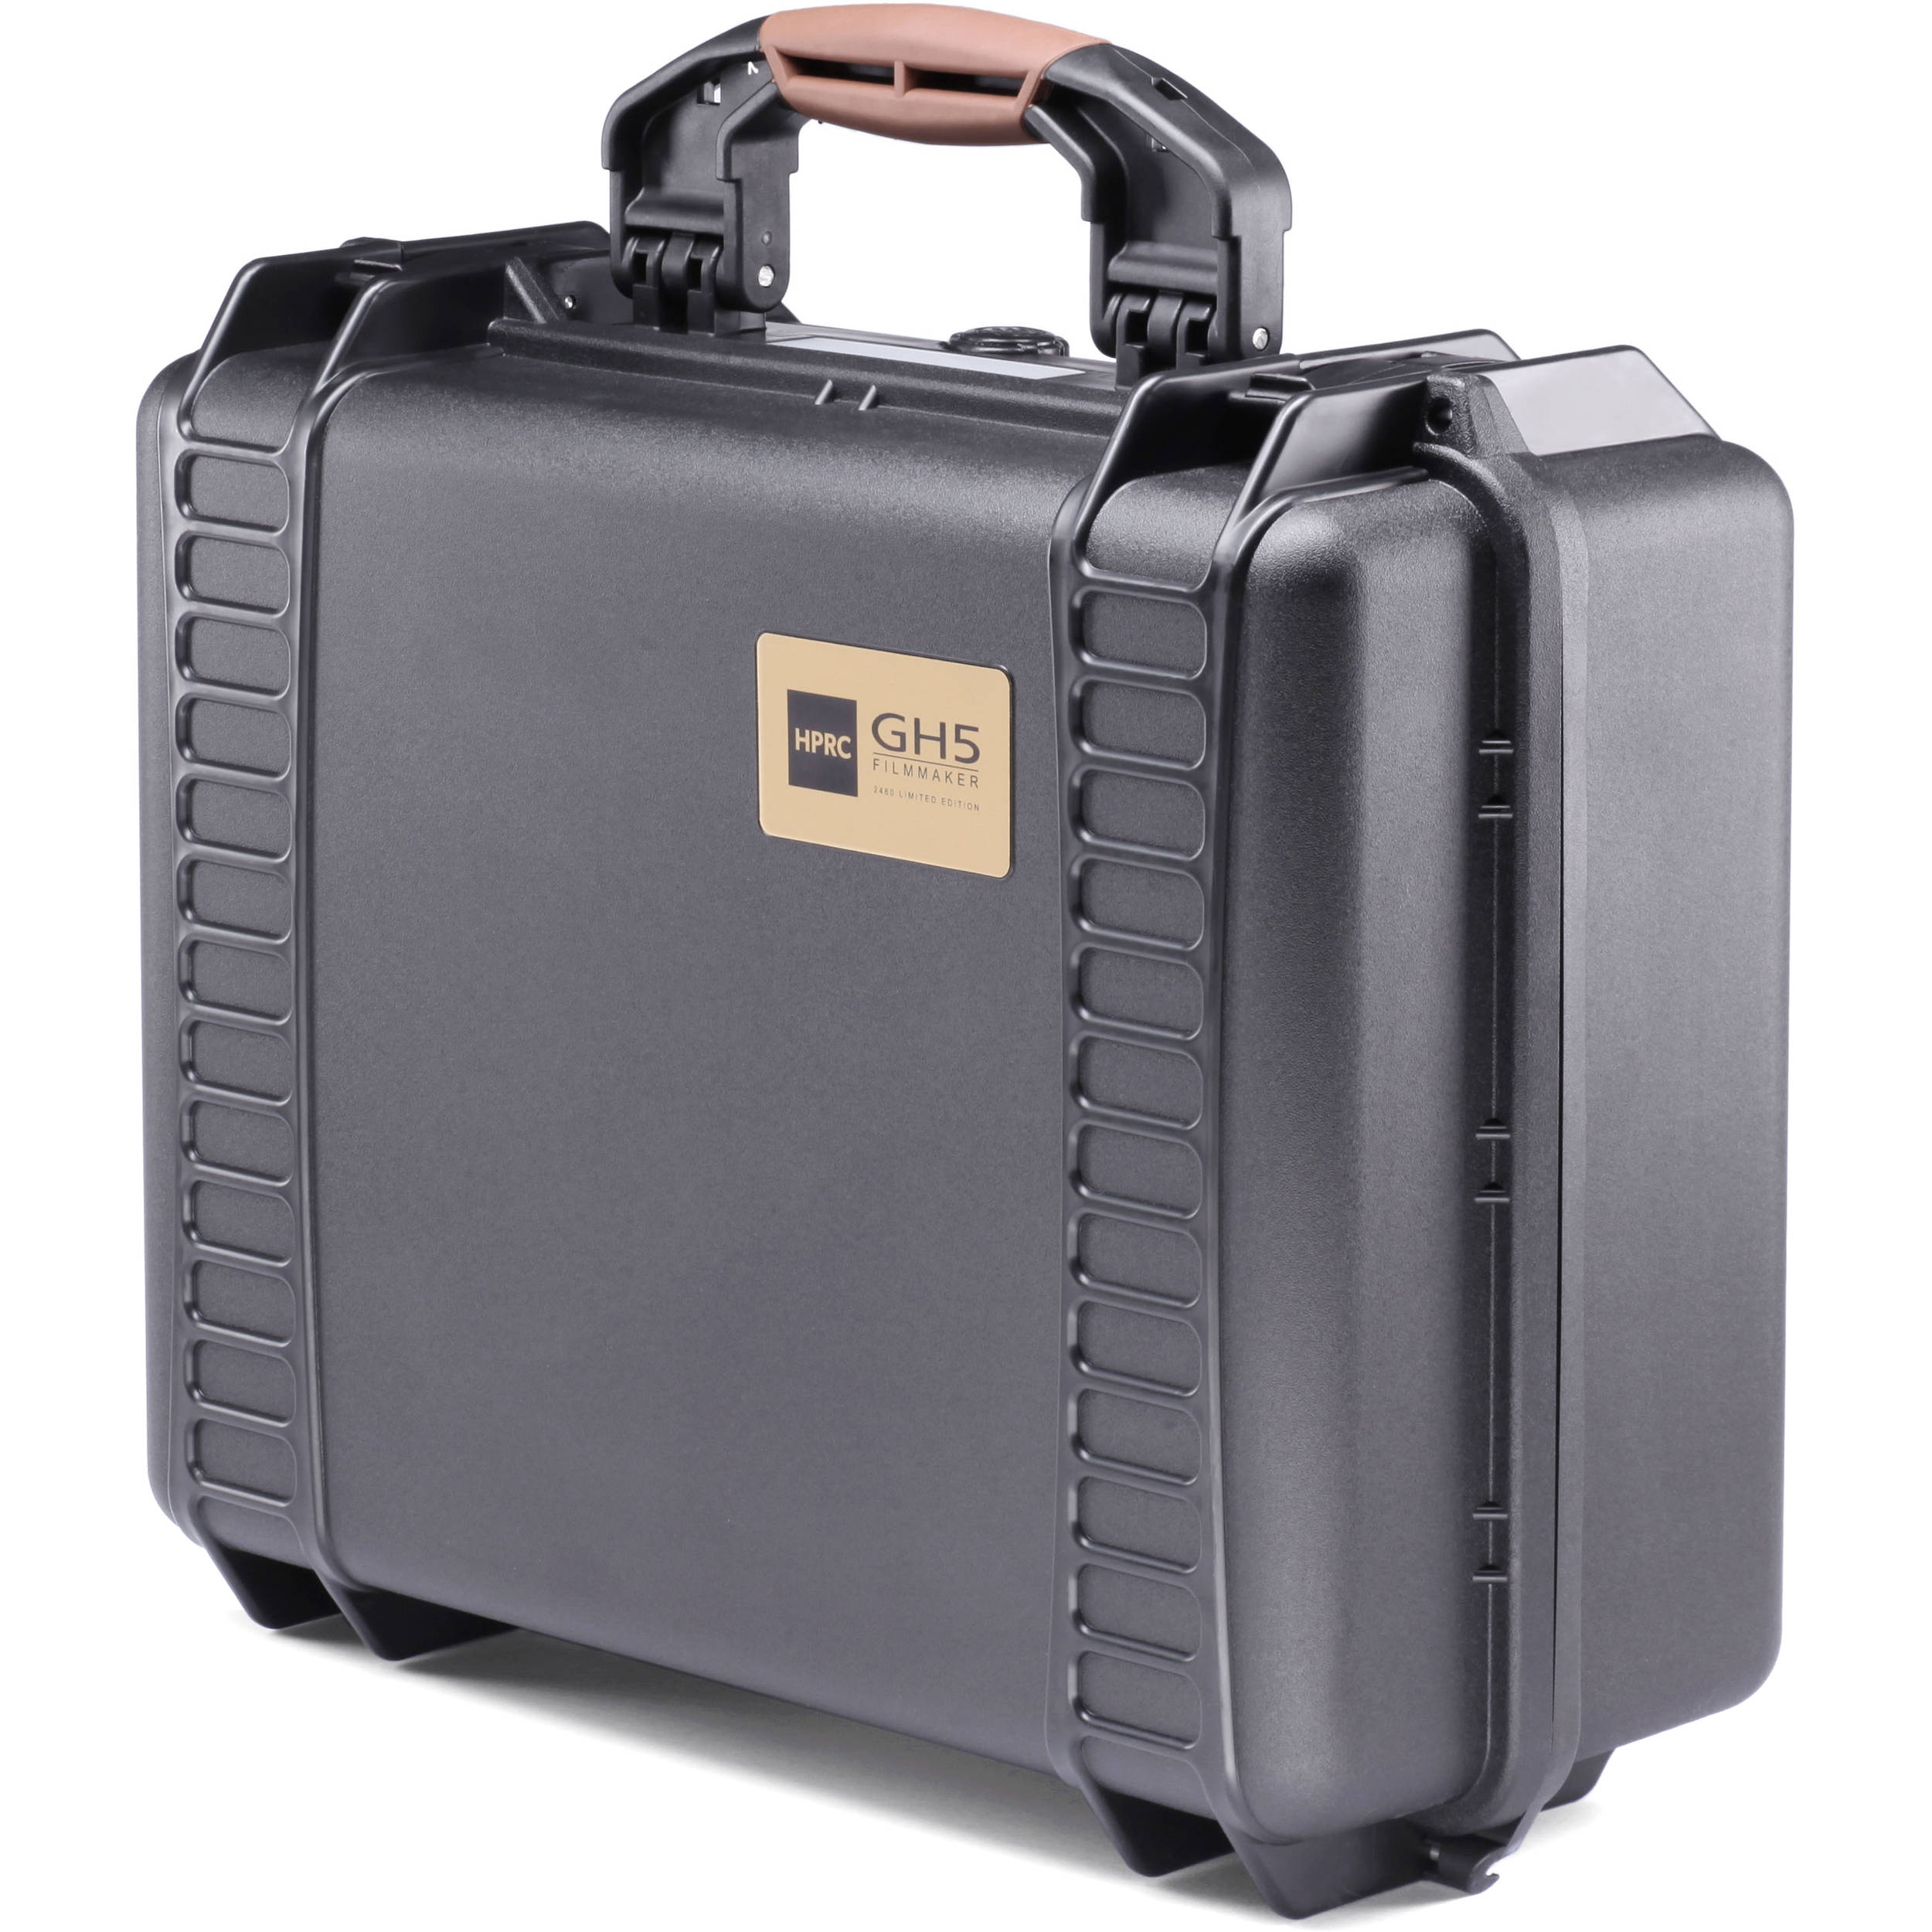 HPRC 2460 Hard Case for Panasonic Lumix GH5 (Black, Foam)